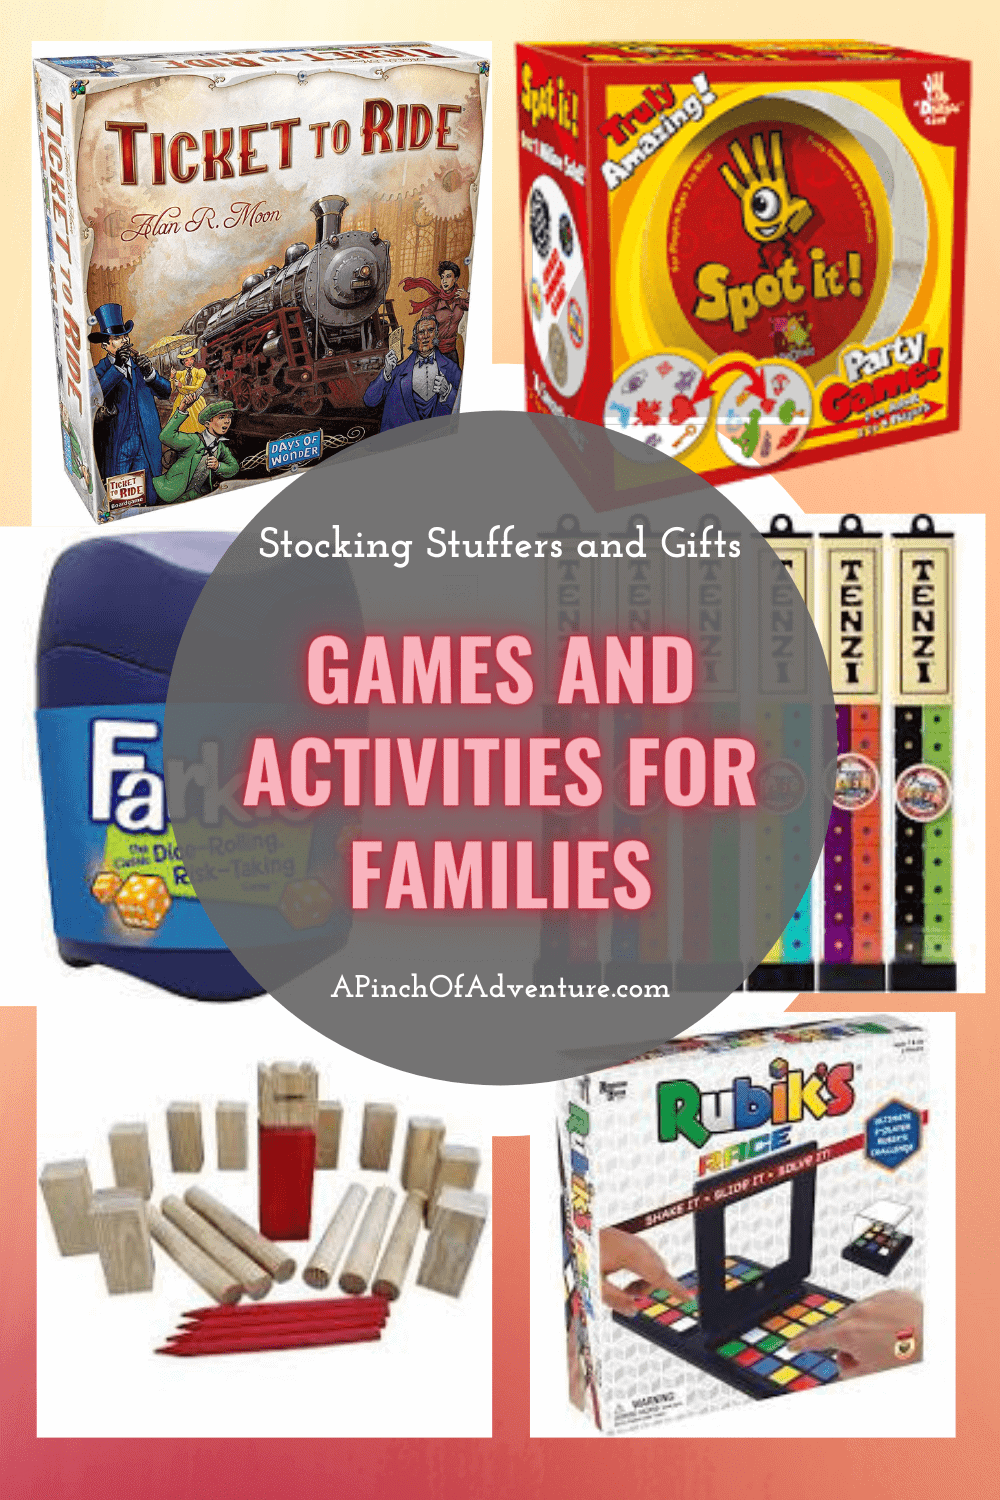 Looking for family game night ideas? This is the best list of 10 games and activities of fun things to do with kids at home. Some of these are also great stocking stuffers under $10 as well. This is the perfect list of boredom busters for all of the family from age 3 and up.